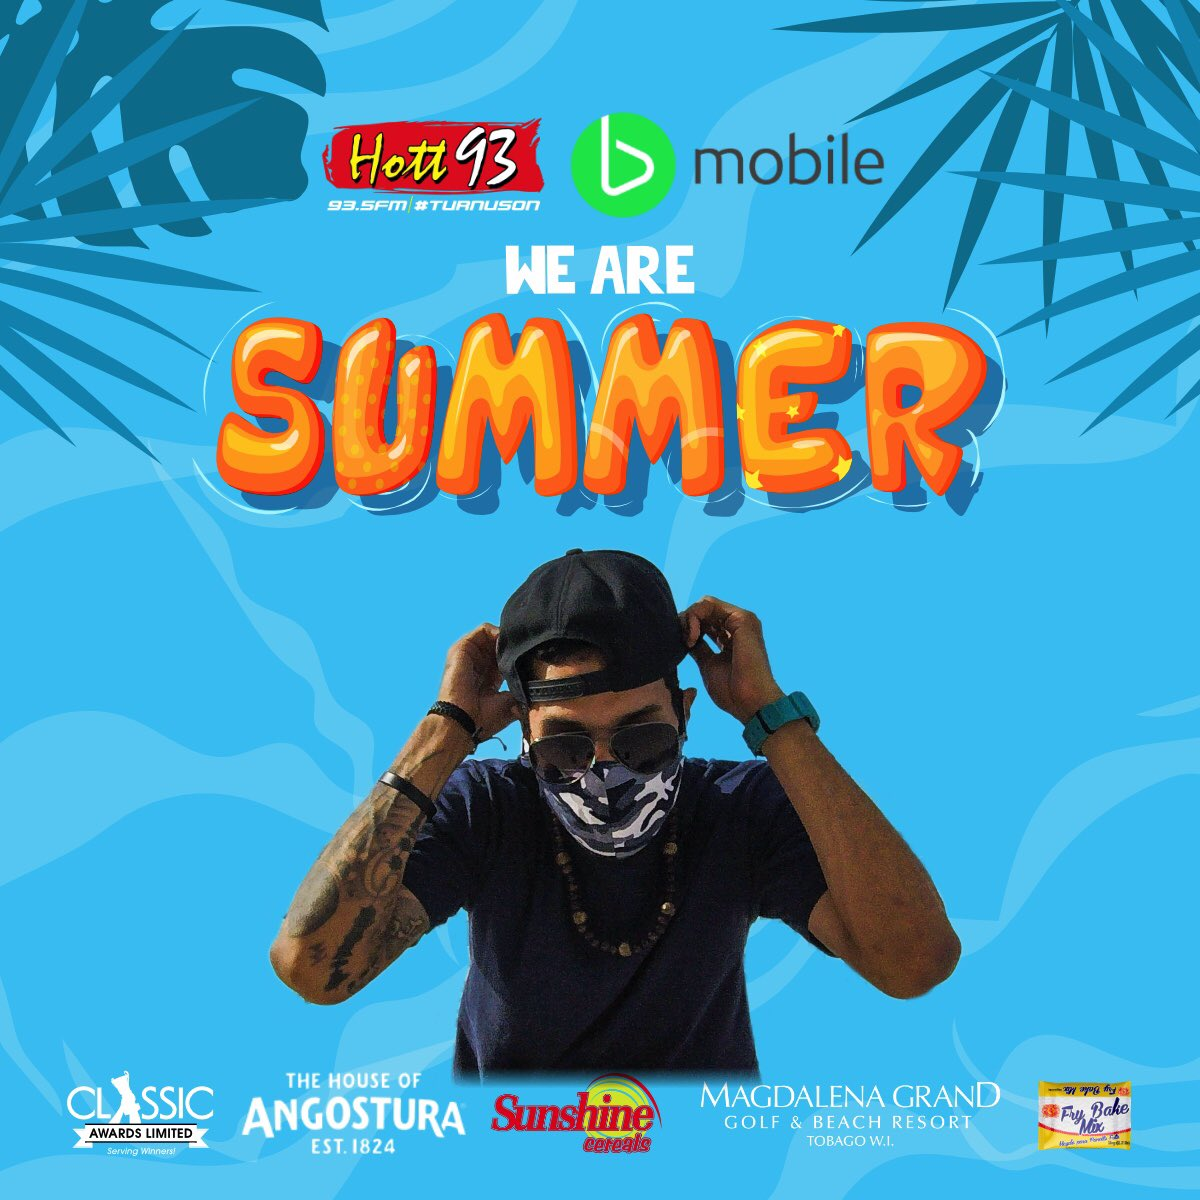 Catch me from 7-8pm as we kick off 'WE ARE SUMMER' streaming live from the rooftop of @hott935 on FB Fan Page & IG. Link up! ⛓⛓  #hott93 #summertime #wearesummer #bmobile #weekend #radiodj #weekendvibes https://t.co/s3RyuVCm8C